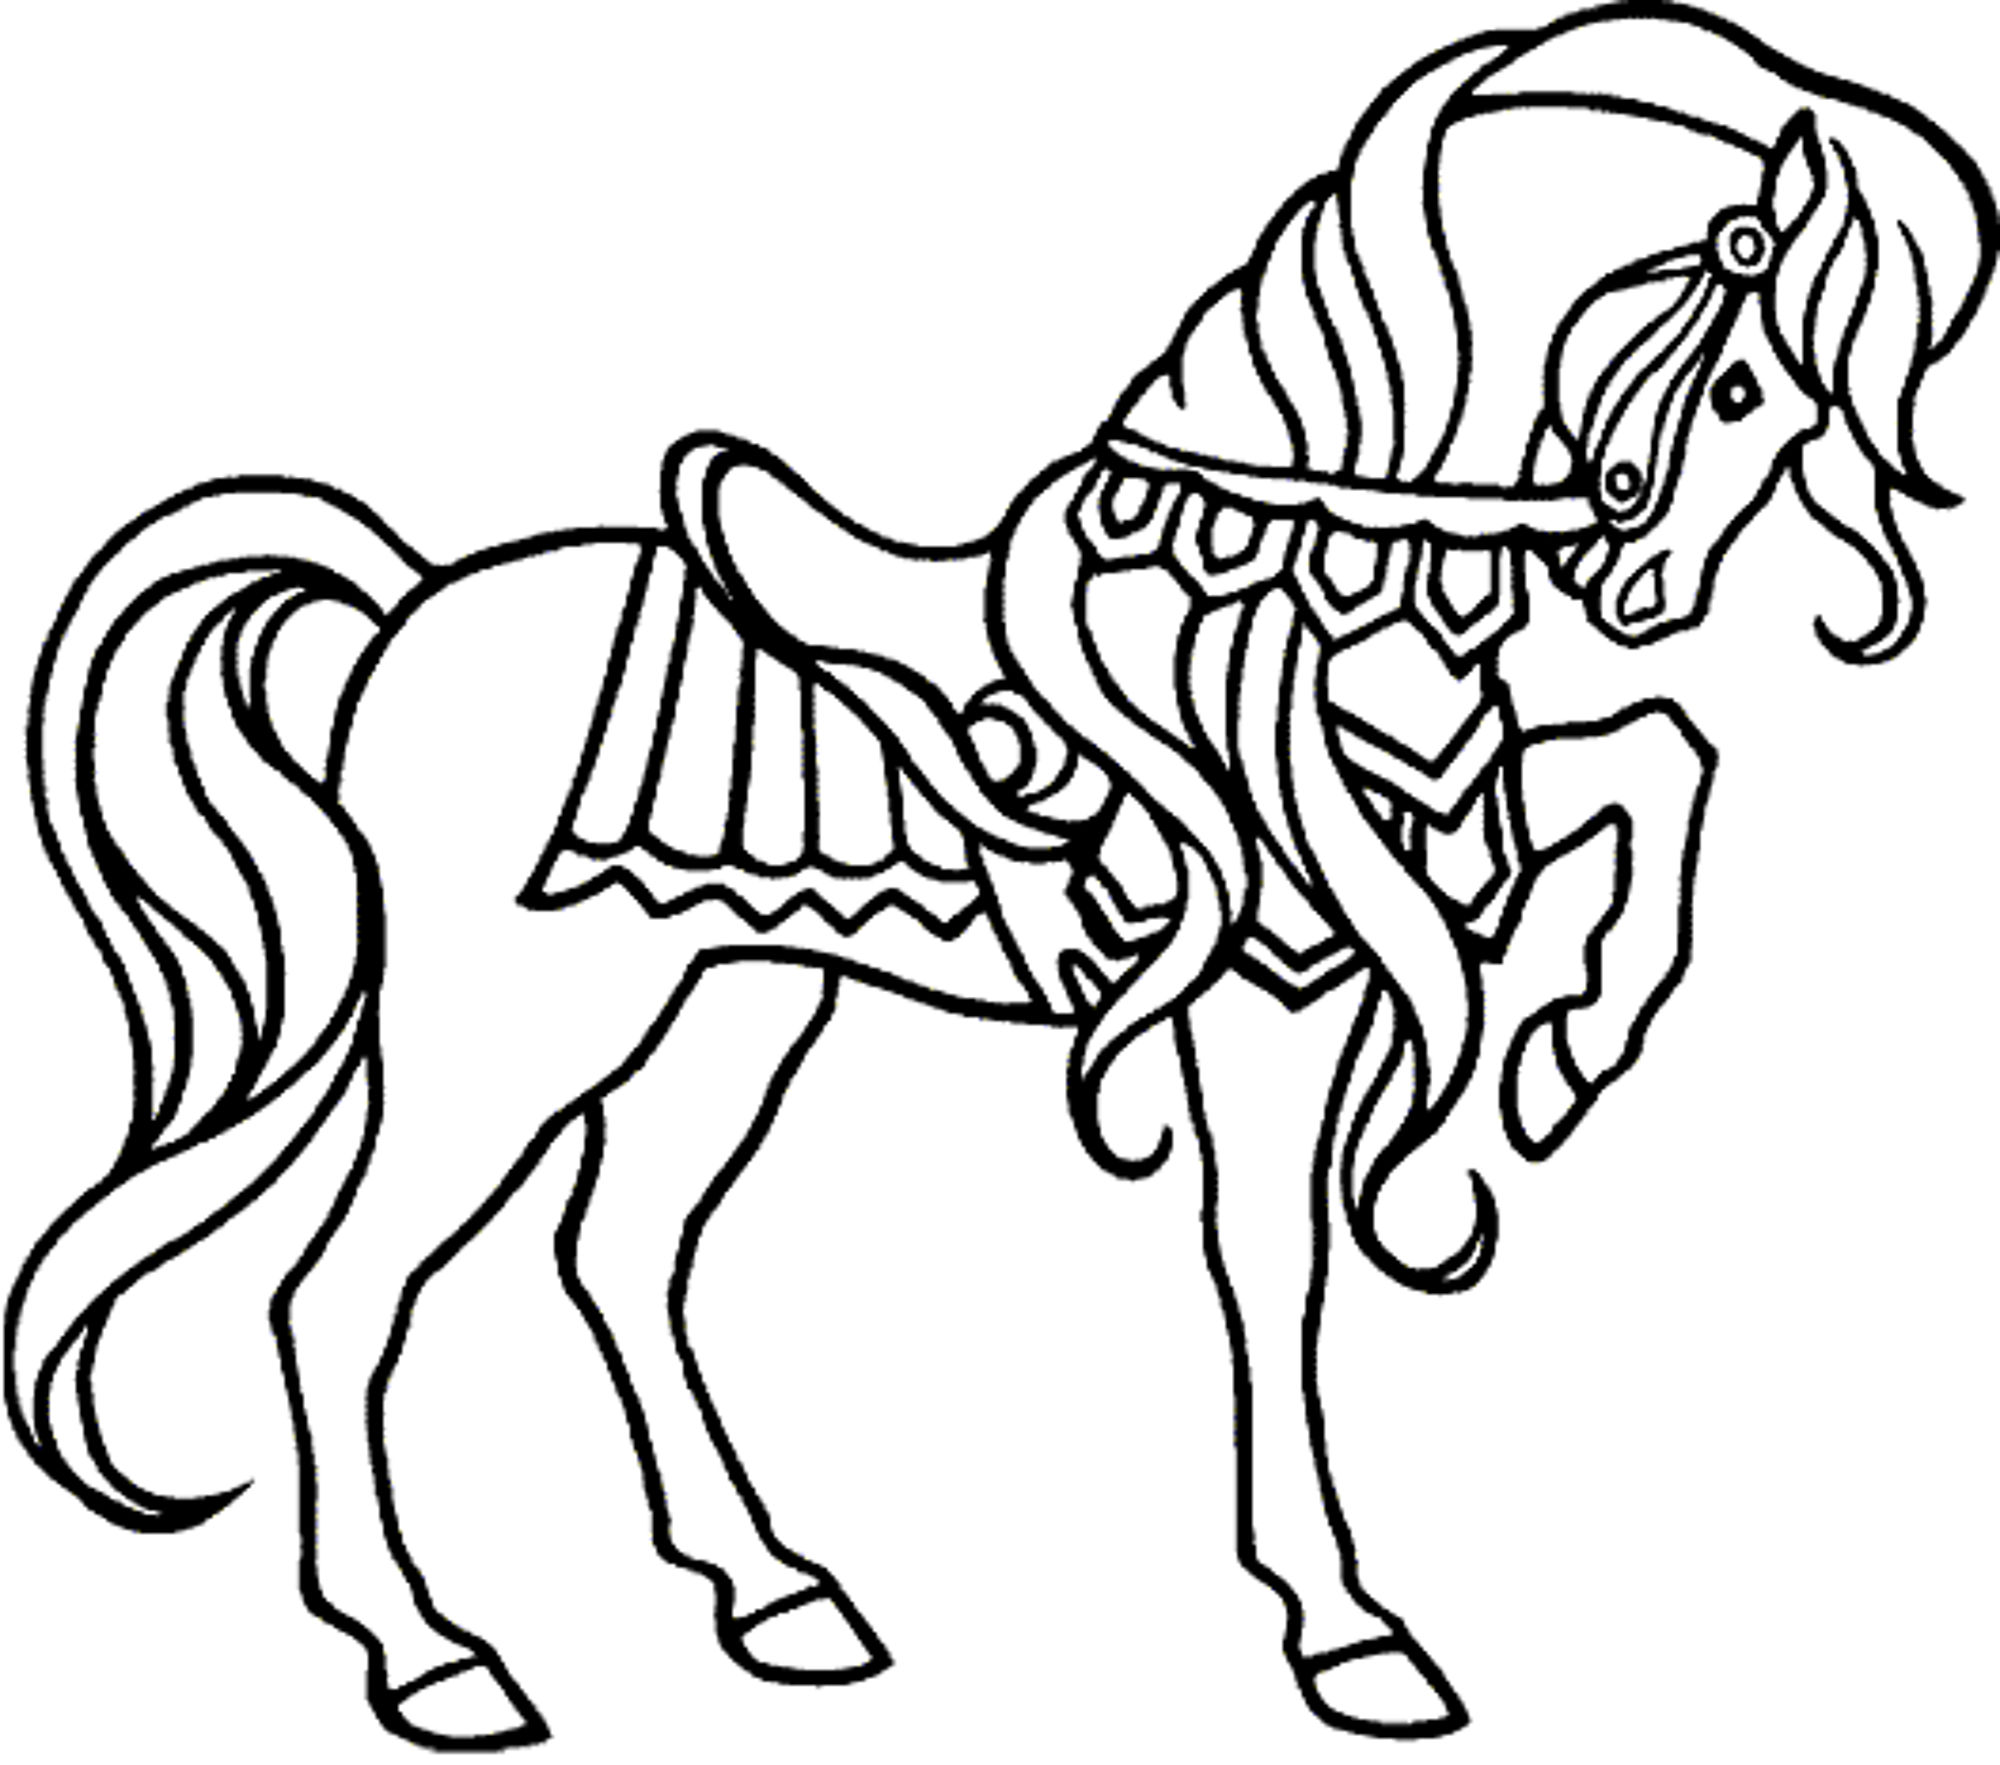 horse coloring pages for girls - Fun Coloring Pages